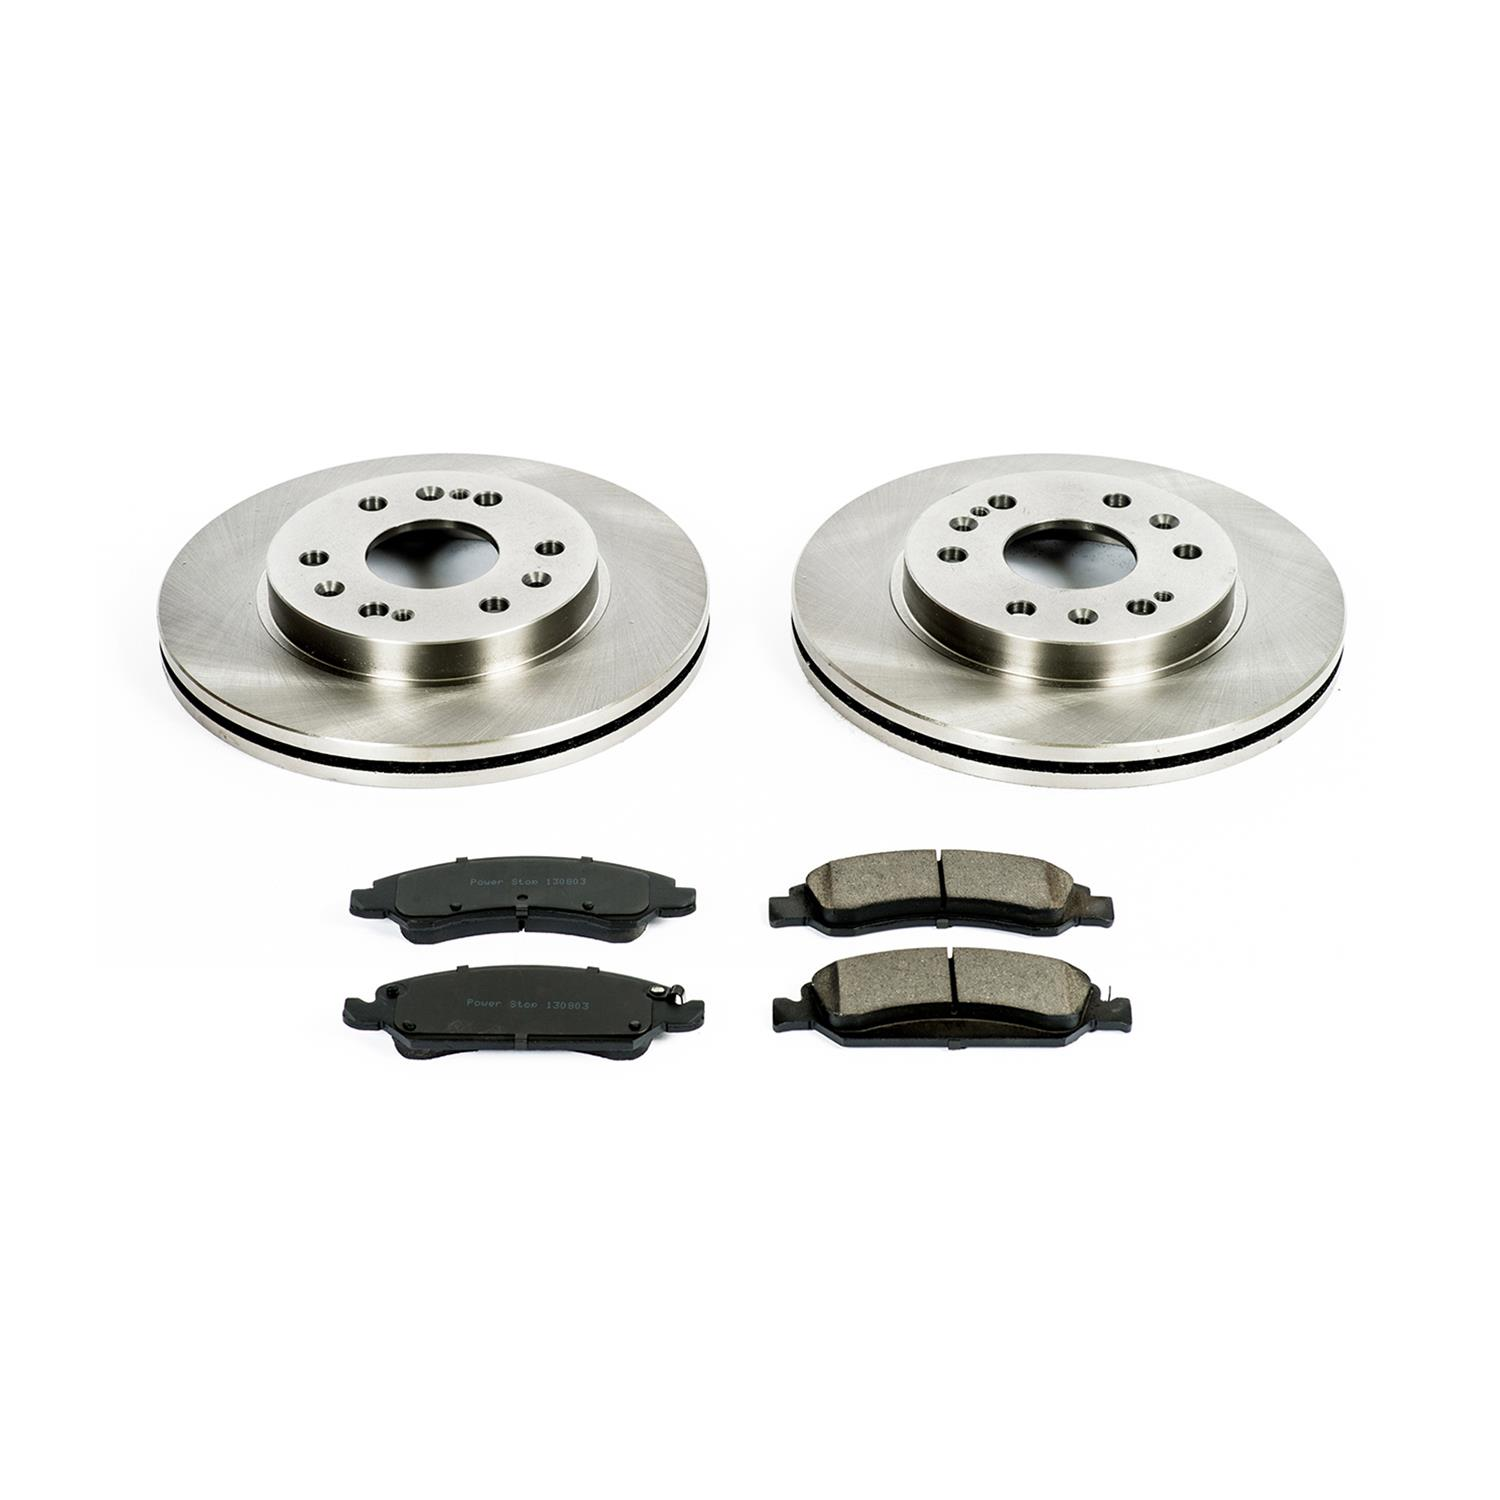 Powerstop Brake Disc and Pad Kits 4-Wheel Set Front /& Rear New for KOE2070